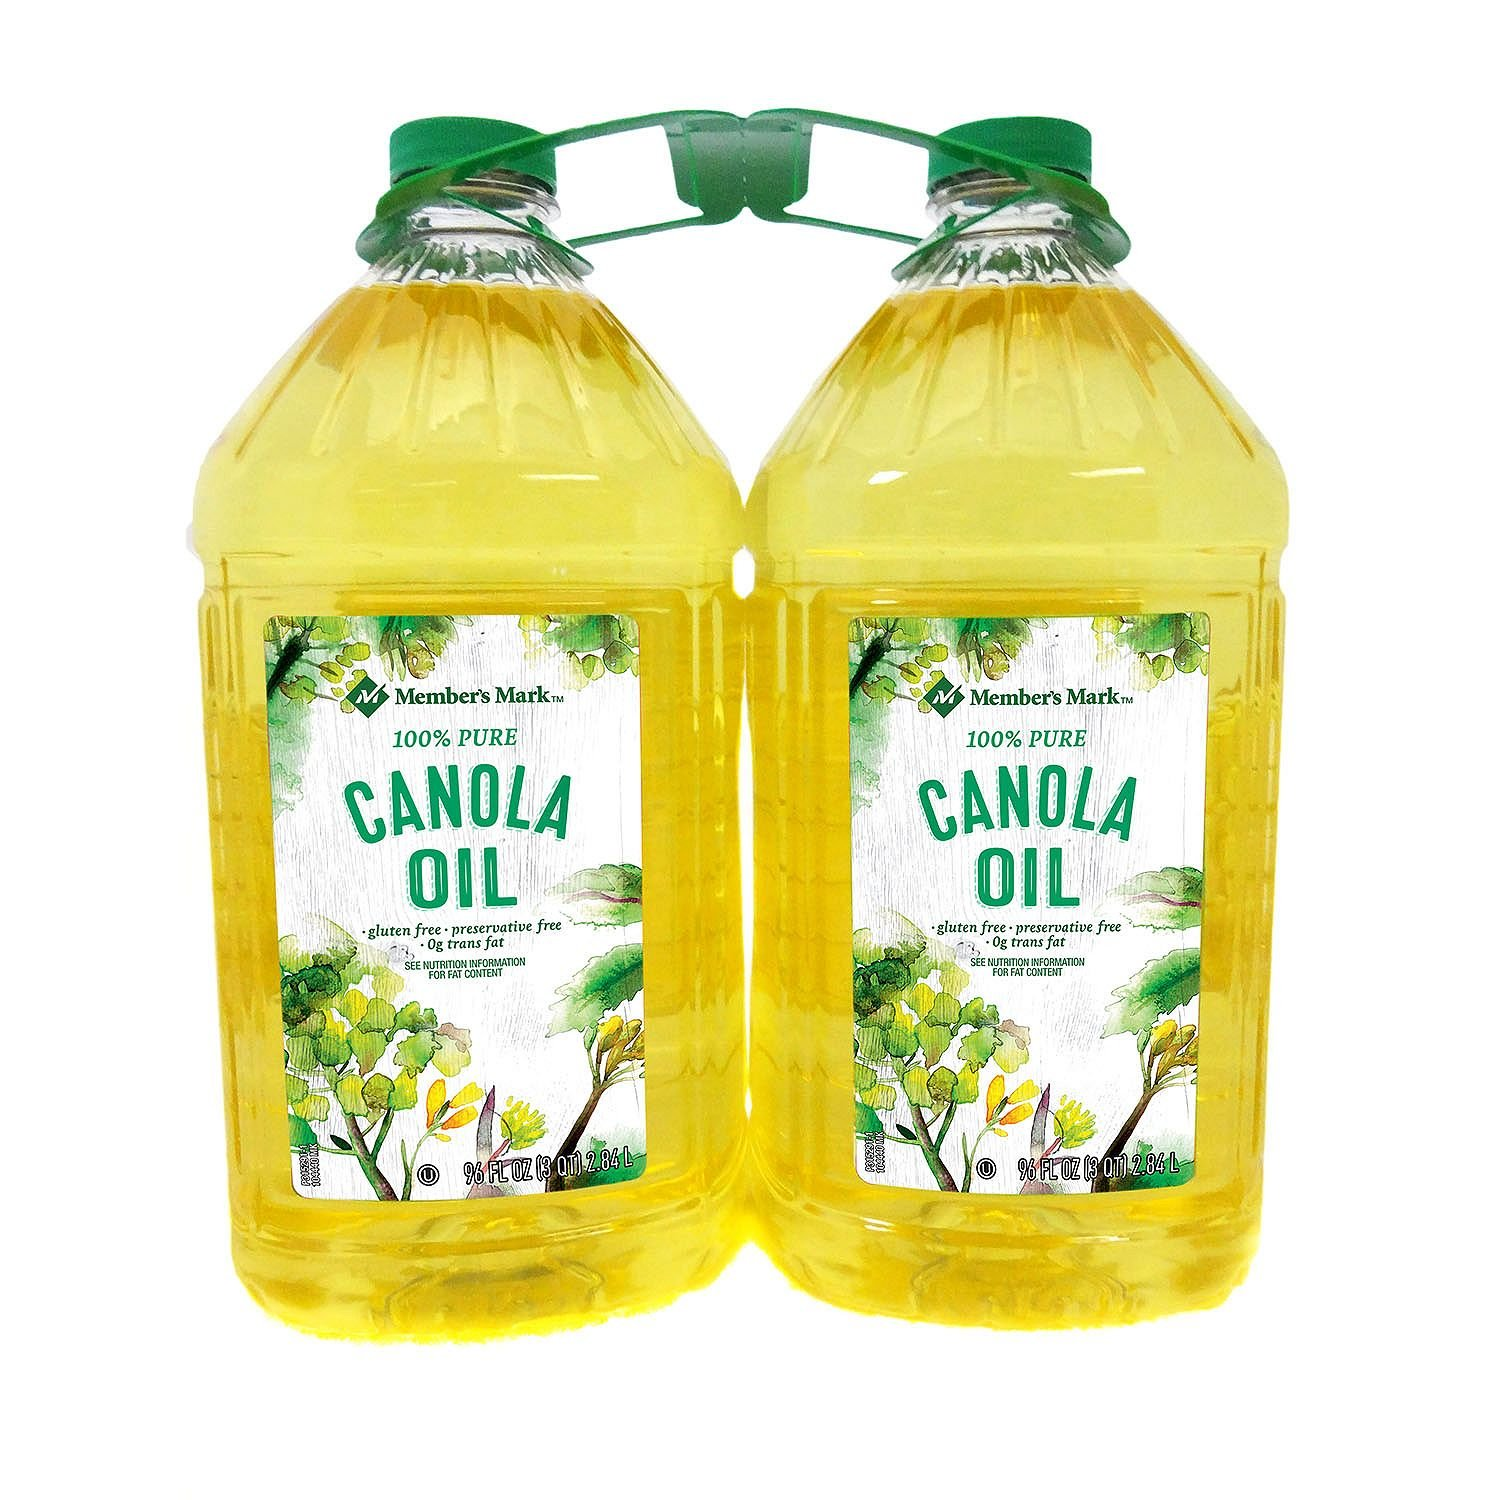 Member's Mark Canola Oil 3 qt., 2 pk. (pack of 3) A1